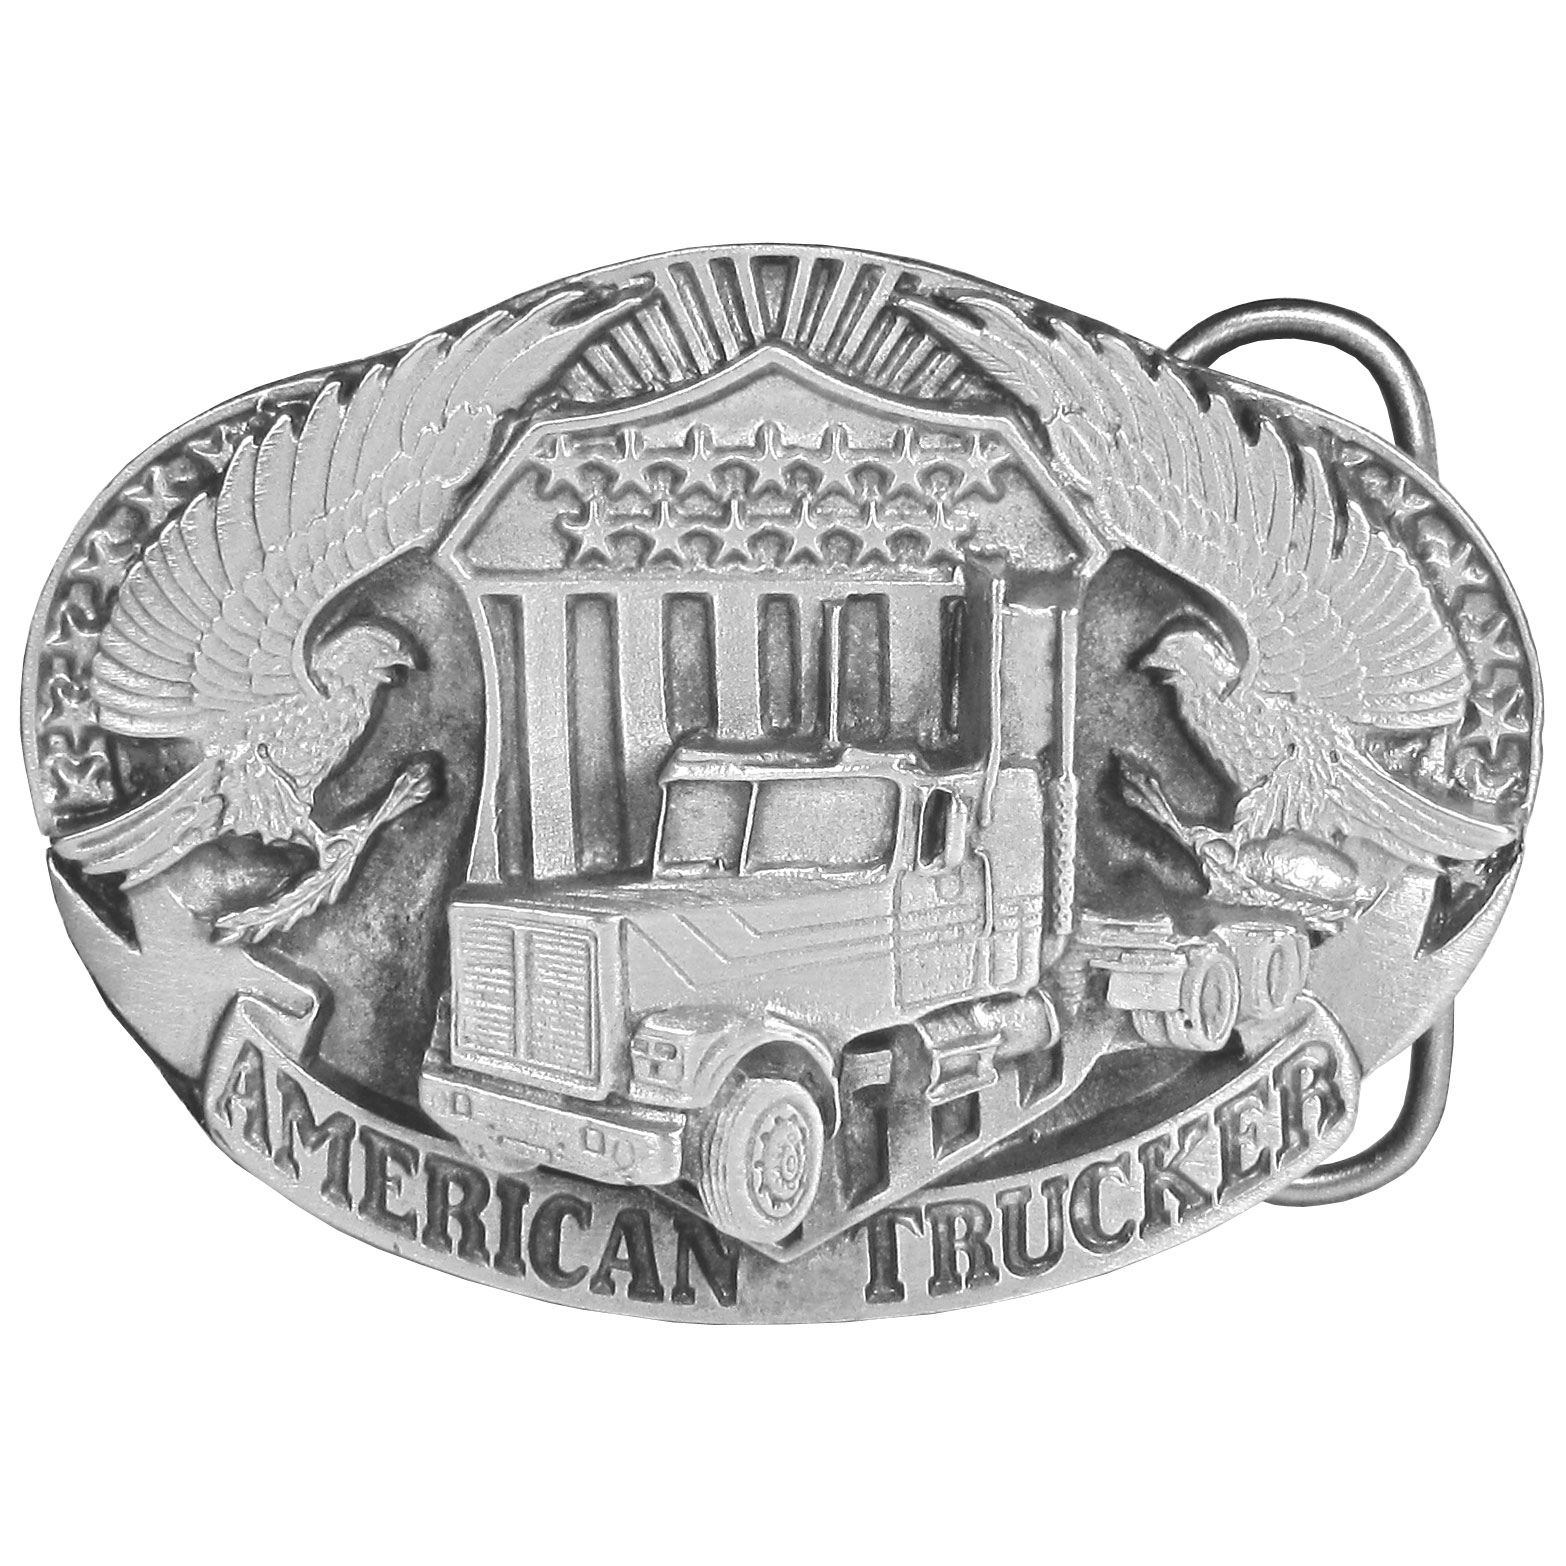 "American Trucker Antiqued Belt Buckle - This belt buckle celebrates the American Trucker! It features a semi truck with two eagles and an American badge with ""American Trucker"" written in bold. On the back are the words, The American Trucker… a 20th century cowboy. Keeping America moving! This exquisitely carved buckle is made of fully cast metal with a standard bale that fits up to 2"" belts."